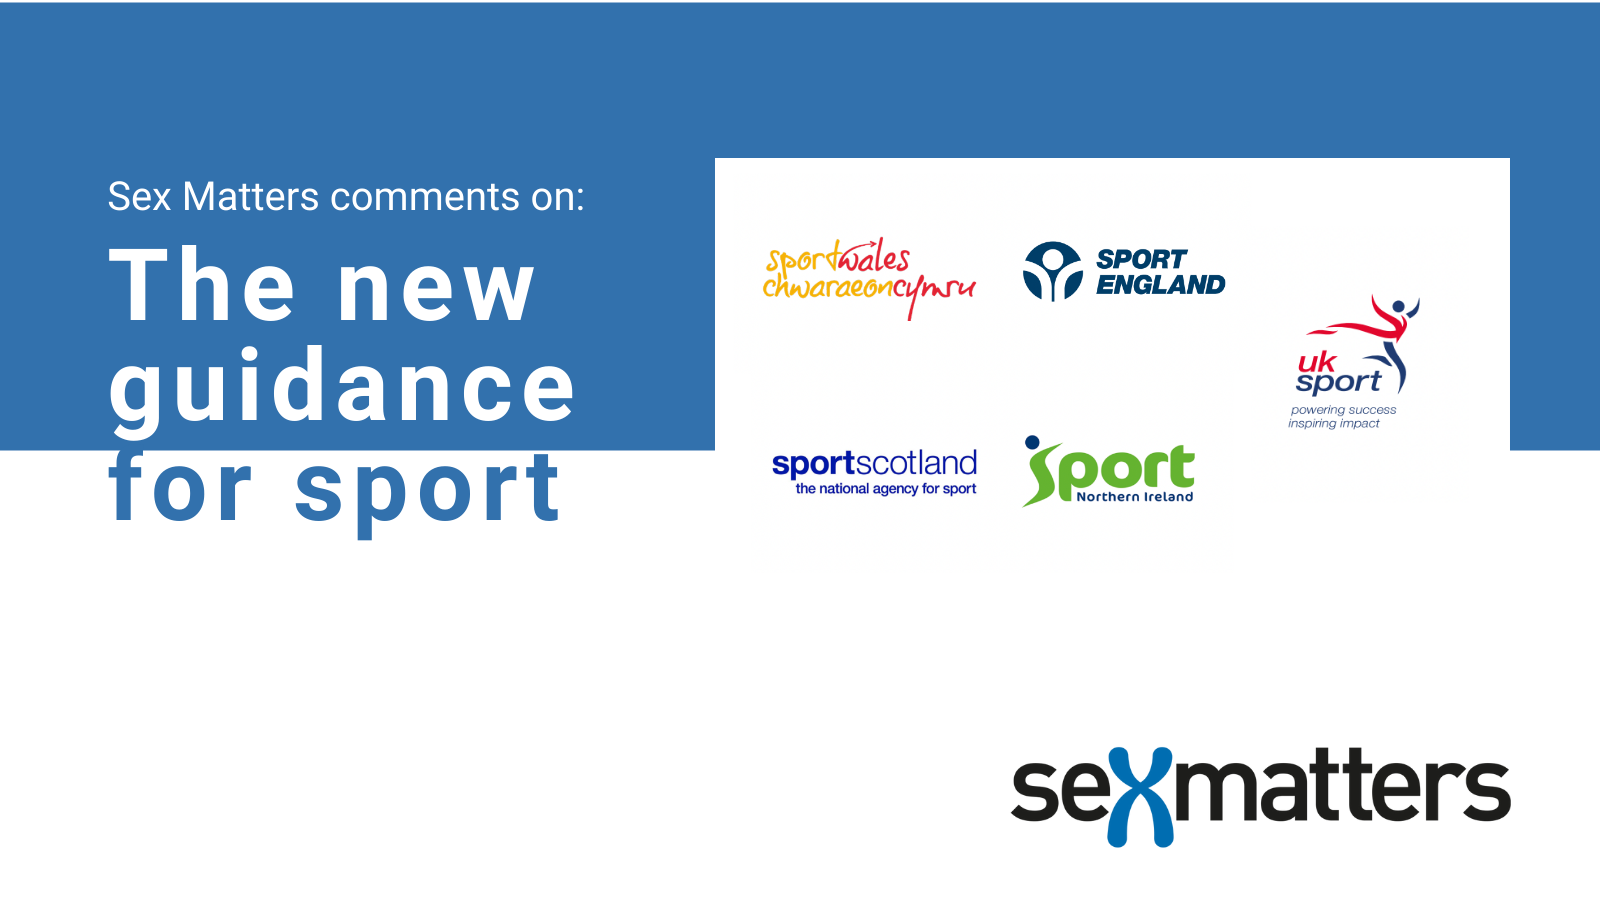 Sex Matters comments on new guidance for sport